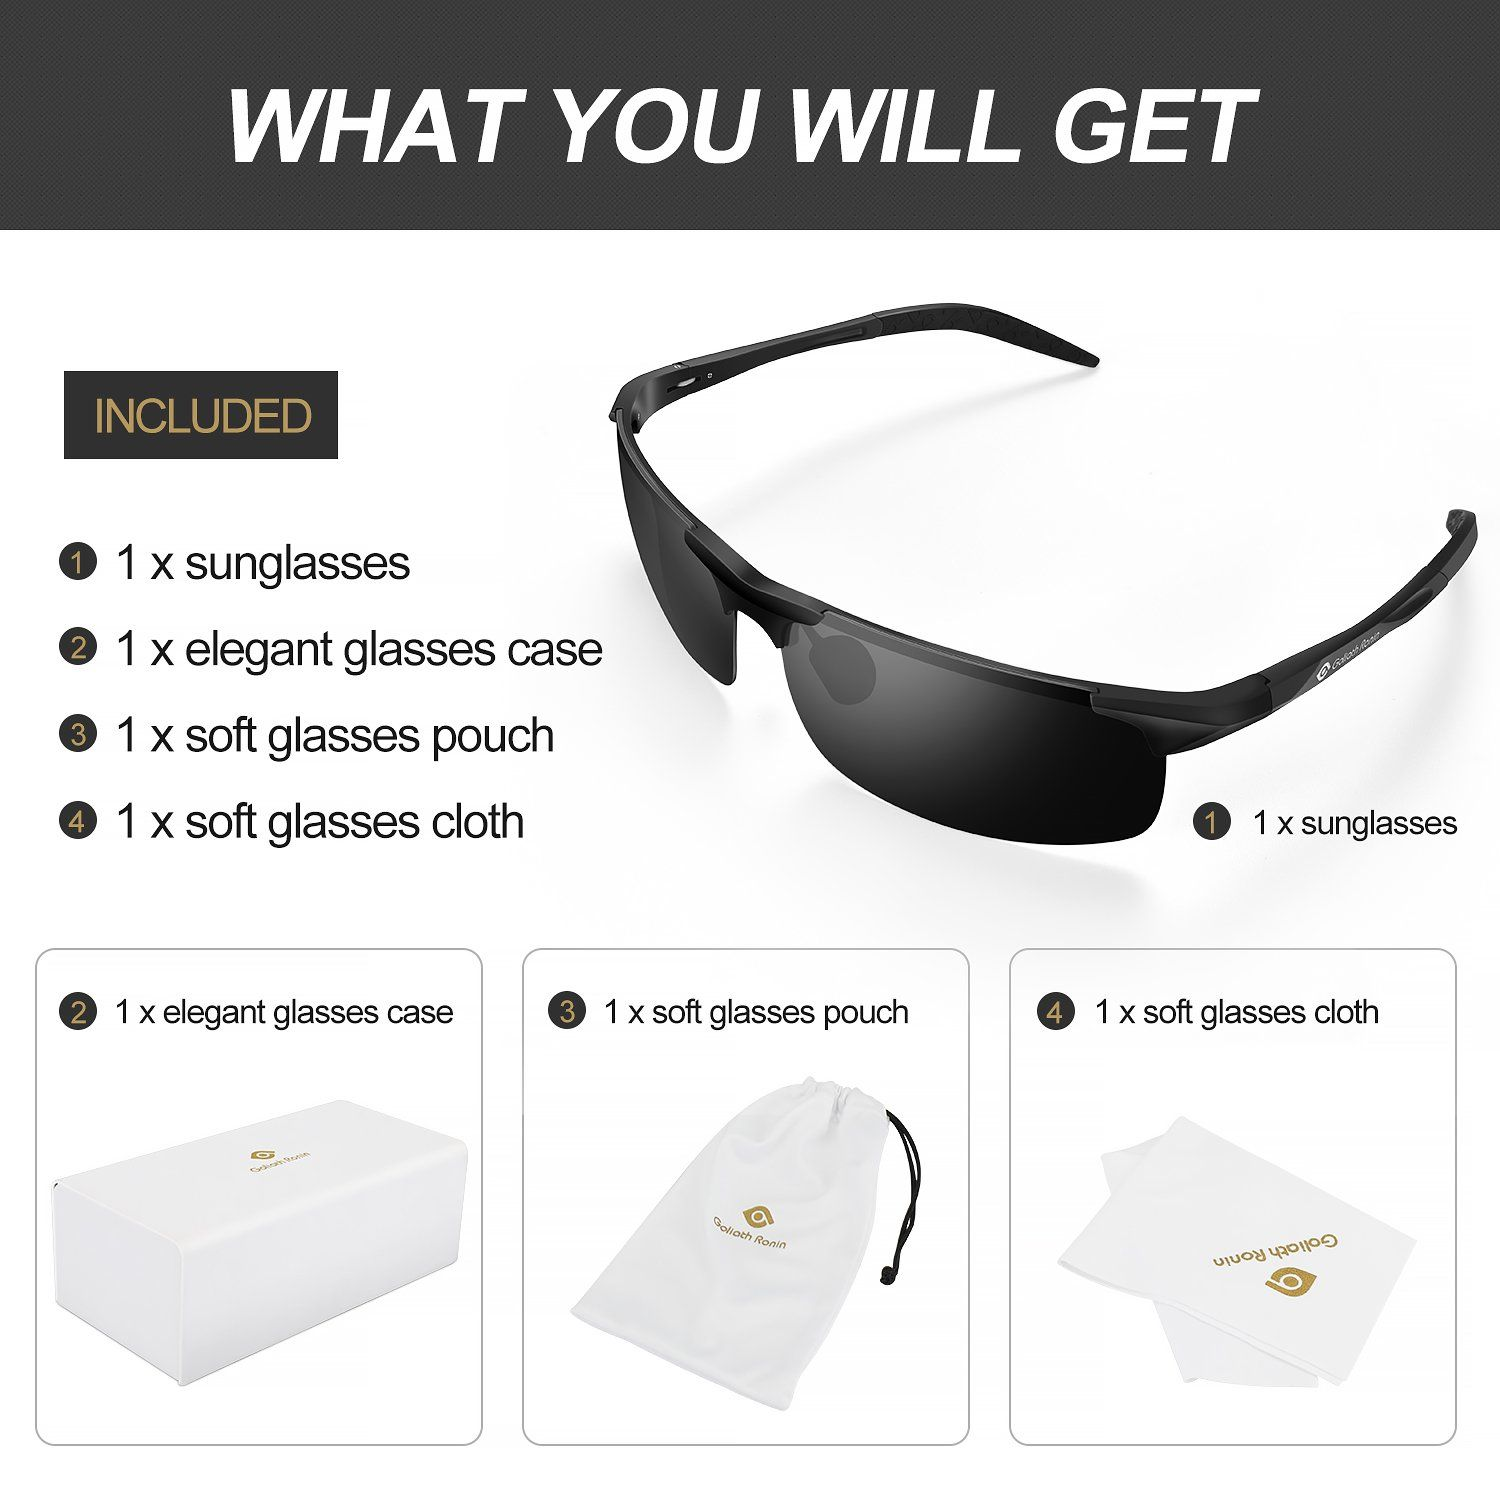 baf2fcd14b Goliath Ronin Polarized Sports Fashion Sunglasses for Driving Cycling  Fishing Golf Outdoor Activities     You can get more details by clicking on  the image.